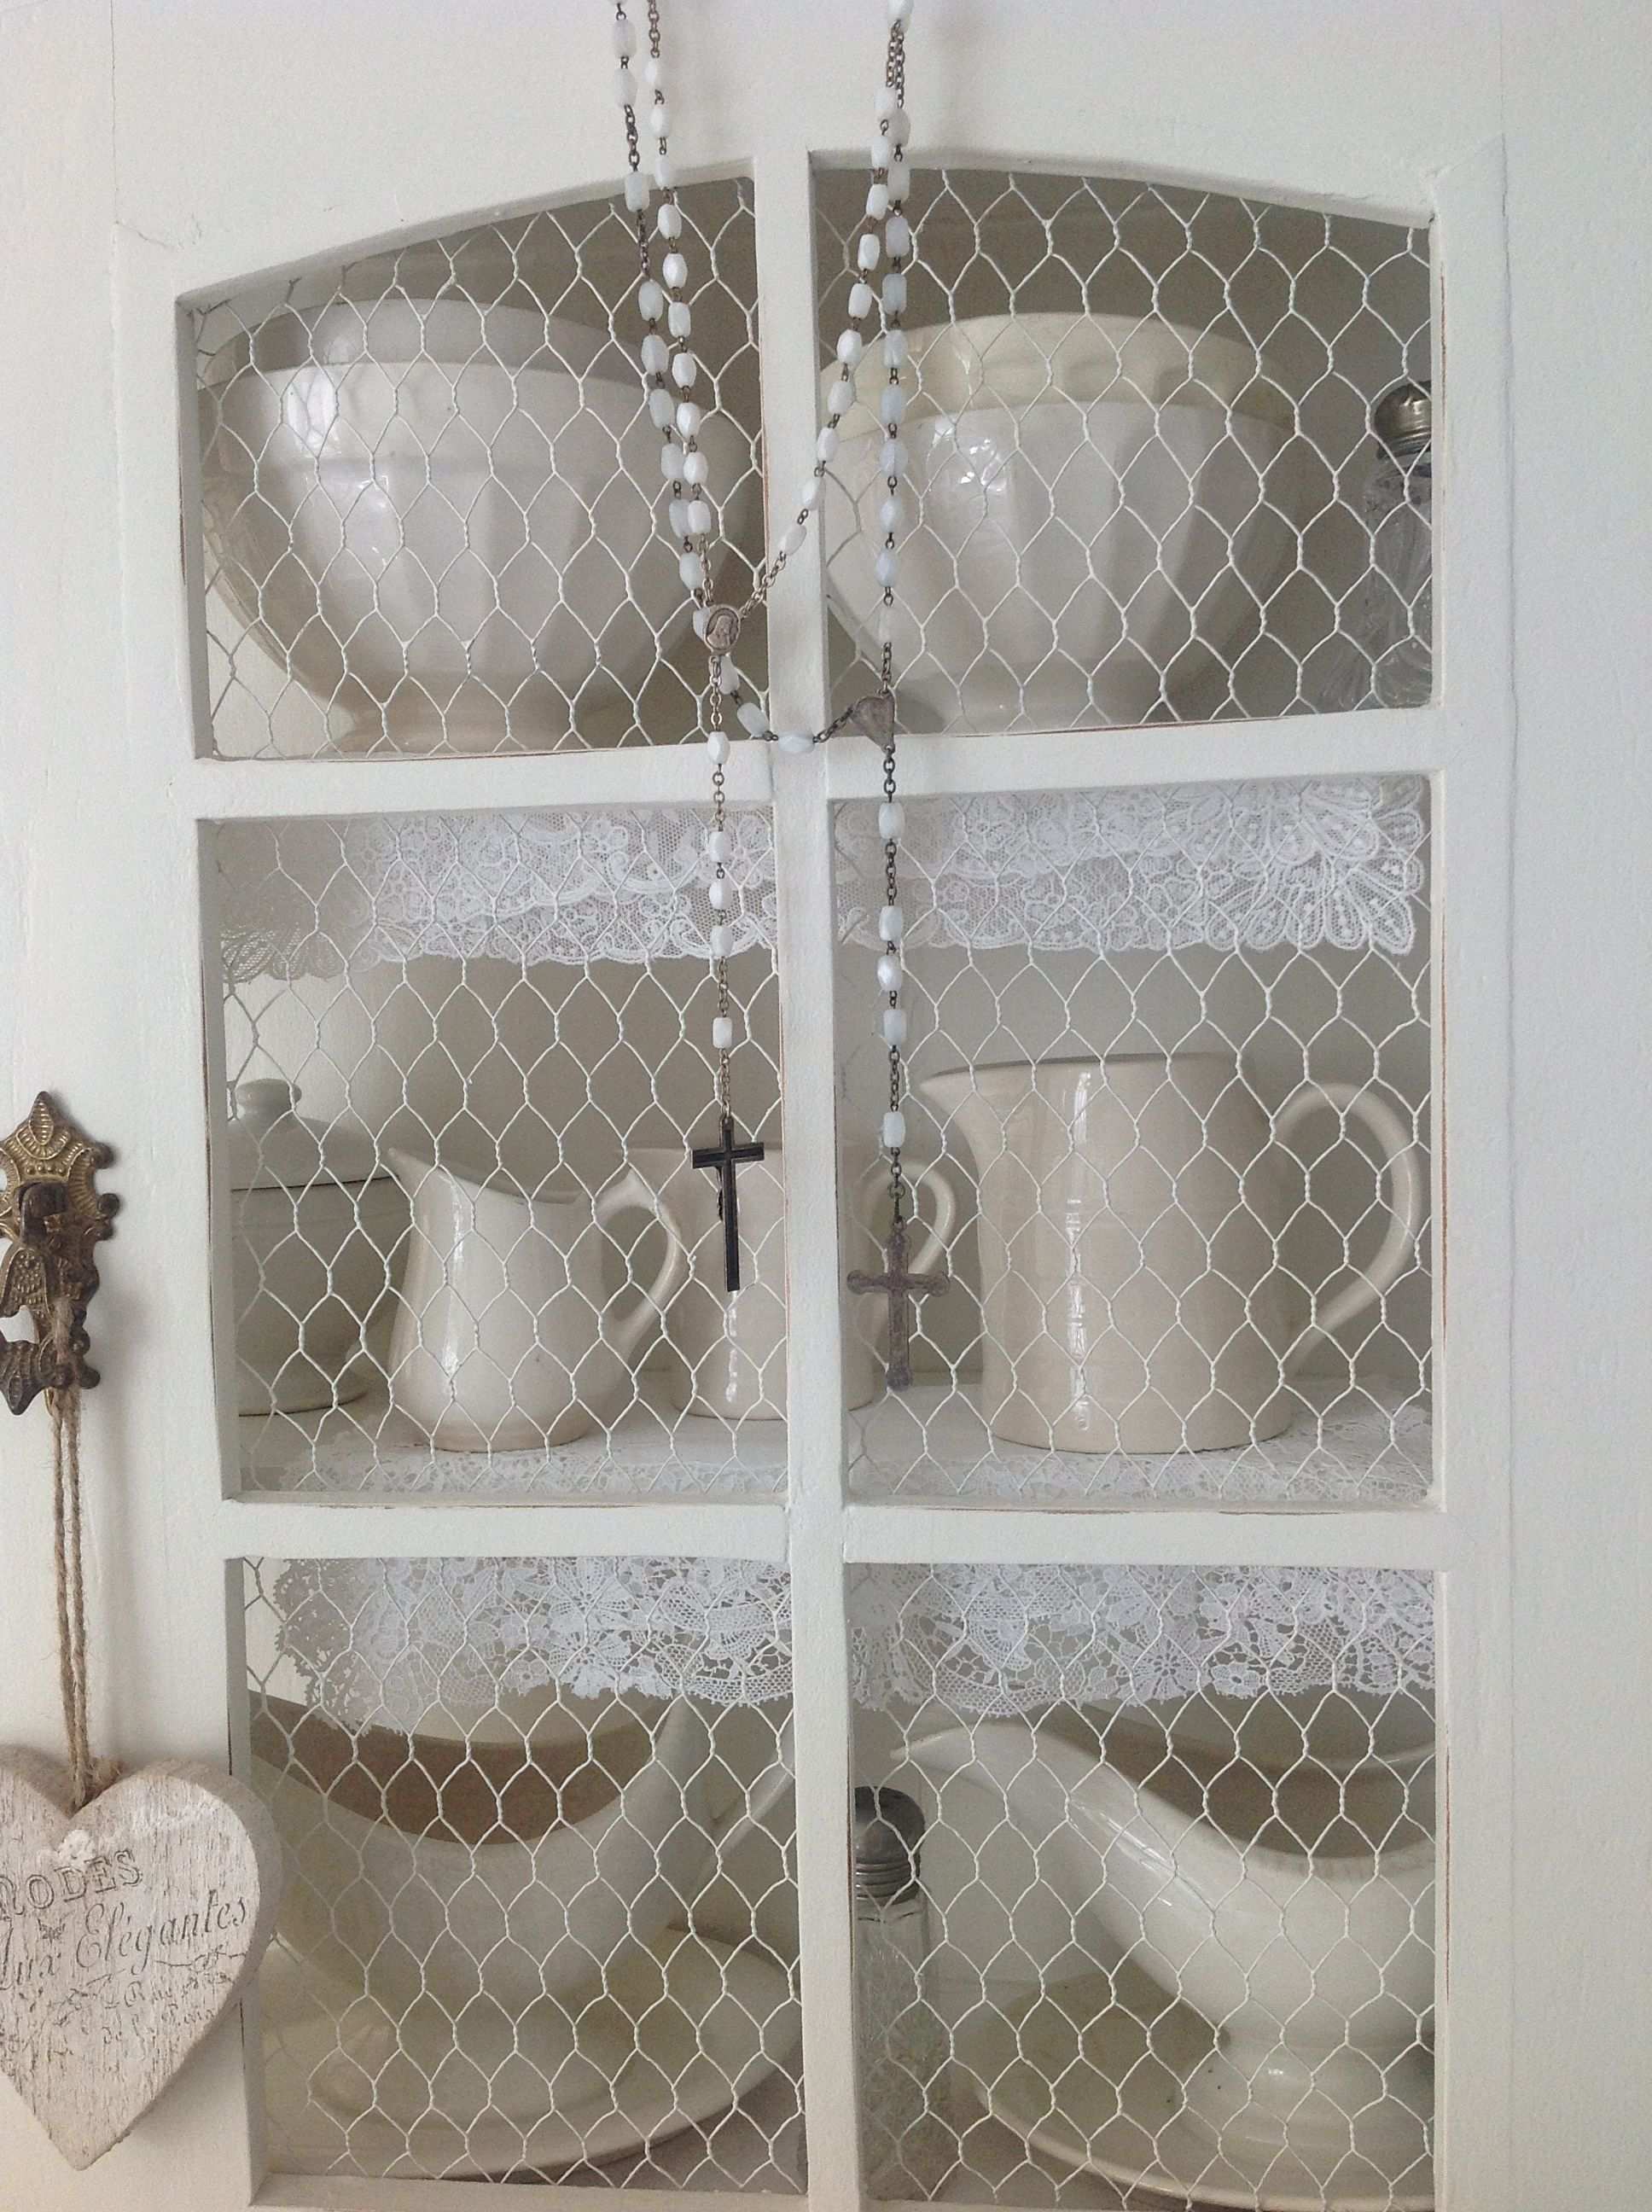 ♥ -...could paint cabinet that holds dishes and replace broken ...